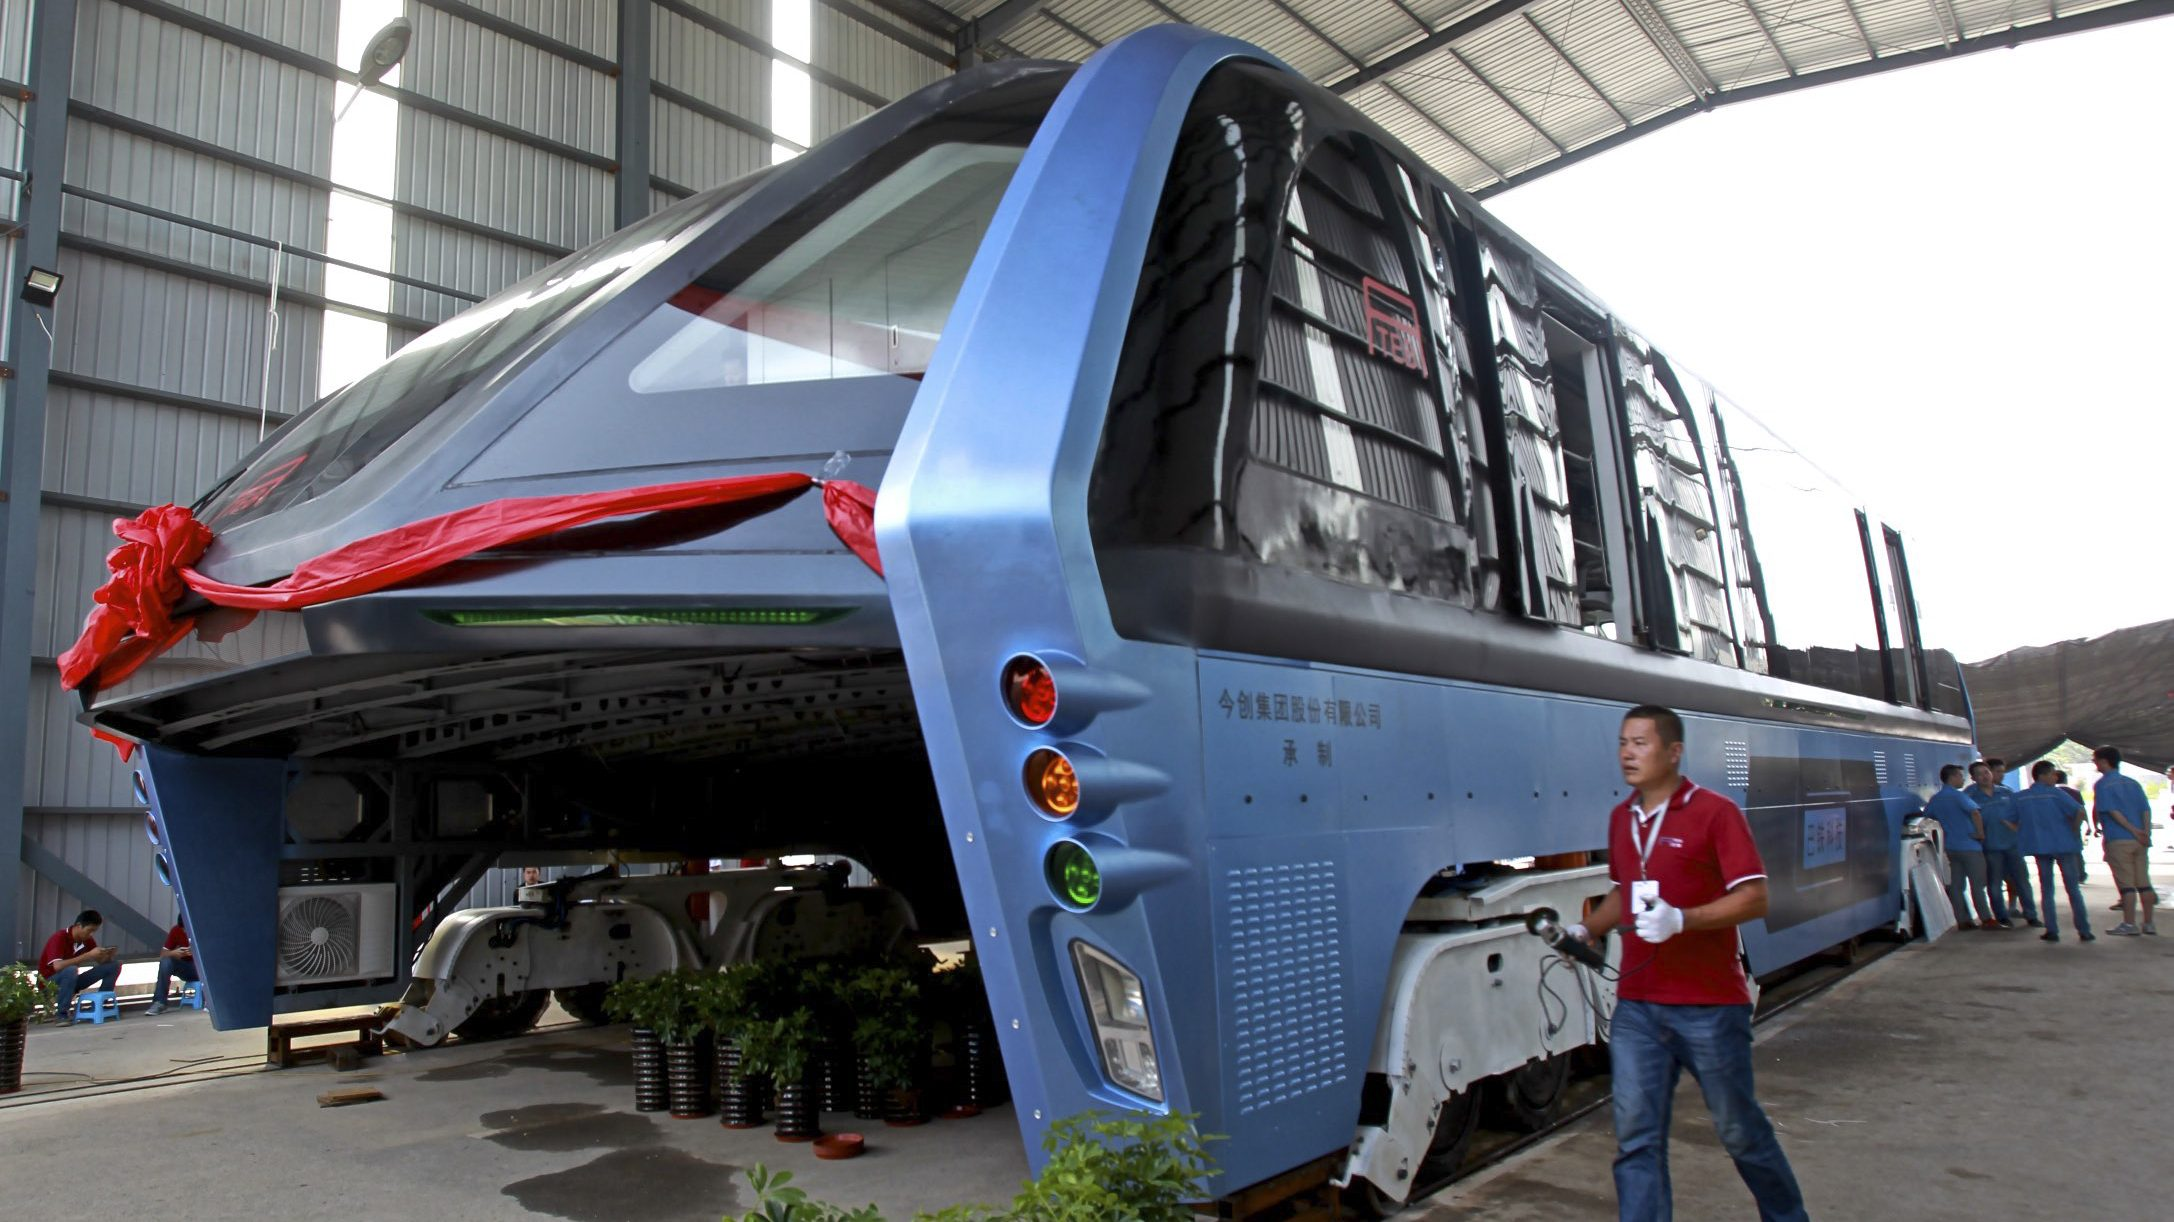 A picture made available 05 August 2016 shows a Transit Elevated Bus (TEB) parked in a garage in Qinhuangdao City, Hebei Province, China, 03 August 2016. The TEB, which is estimated at 2 meters high, 21 meters long and 7 meters wide, was first introduced through a mini-model at the 19th China Beijing International High-Tech Expo in May. It is estimated to be able to carry 300 passengers.